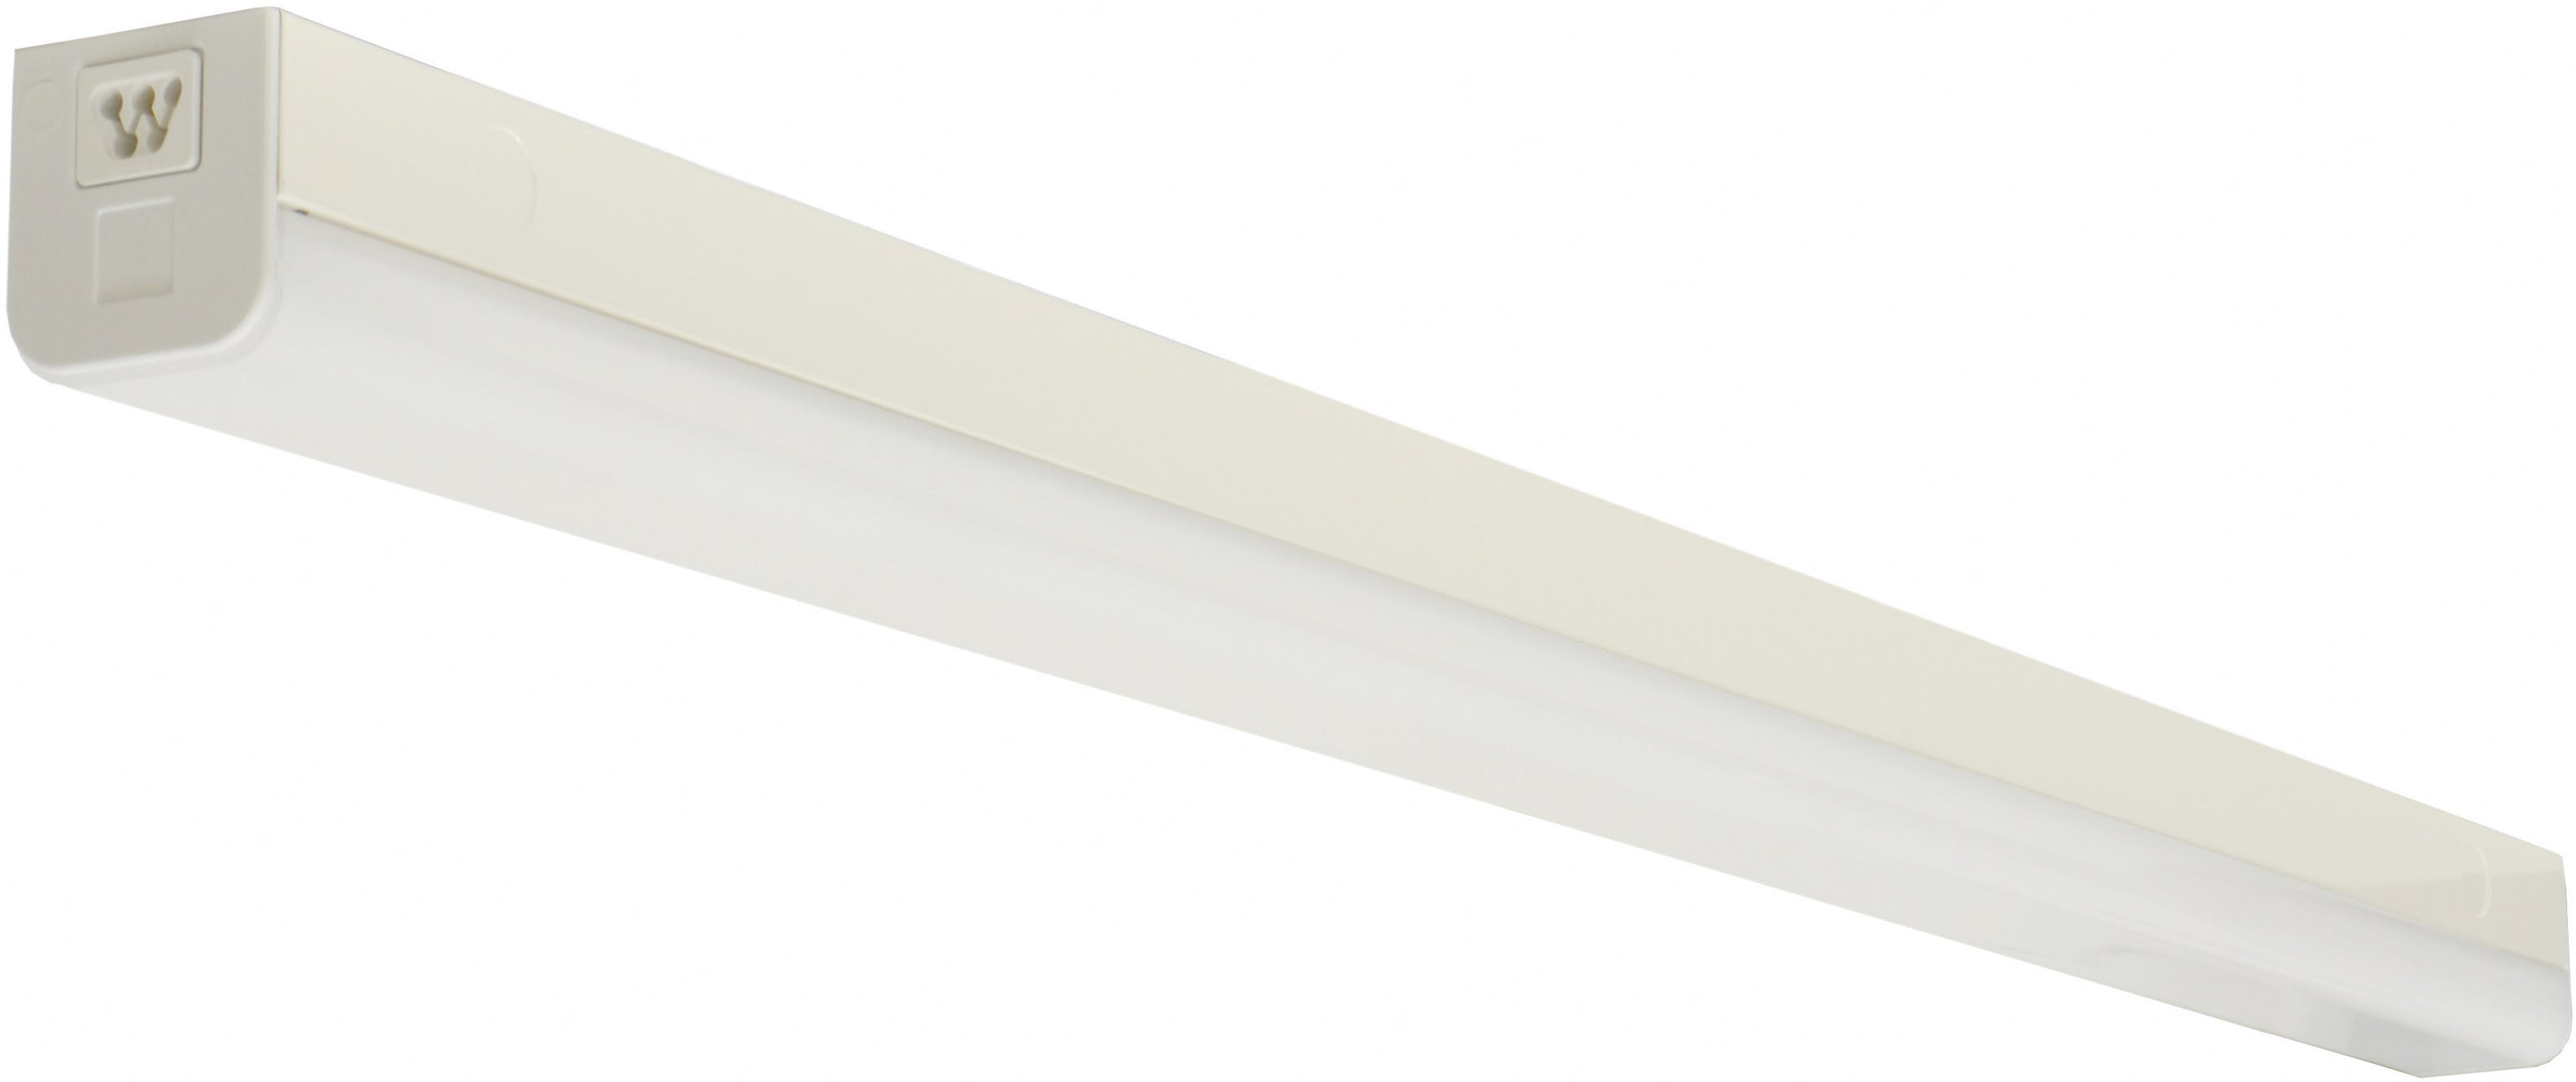 """Nuvo LED 38w 48"""" Slim Strip Light Fixture w/ Connectible in White Finish 4000k"""